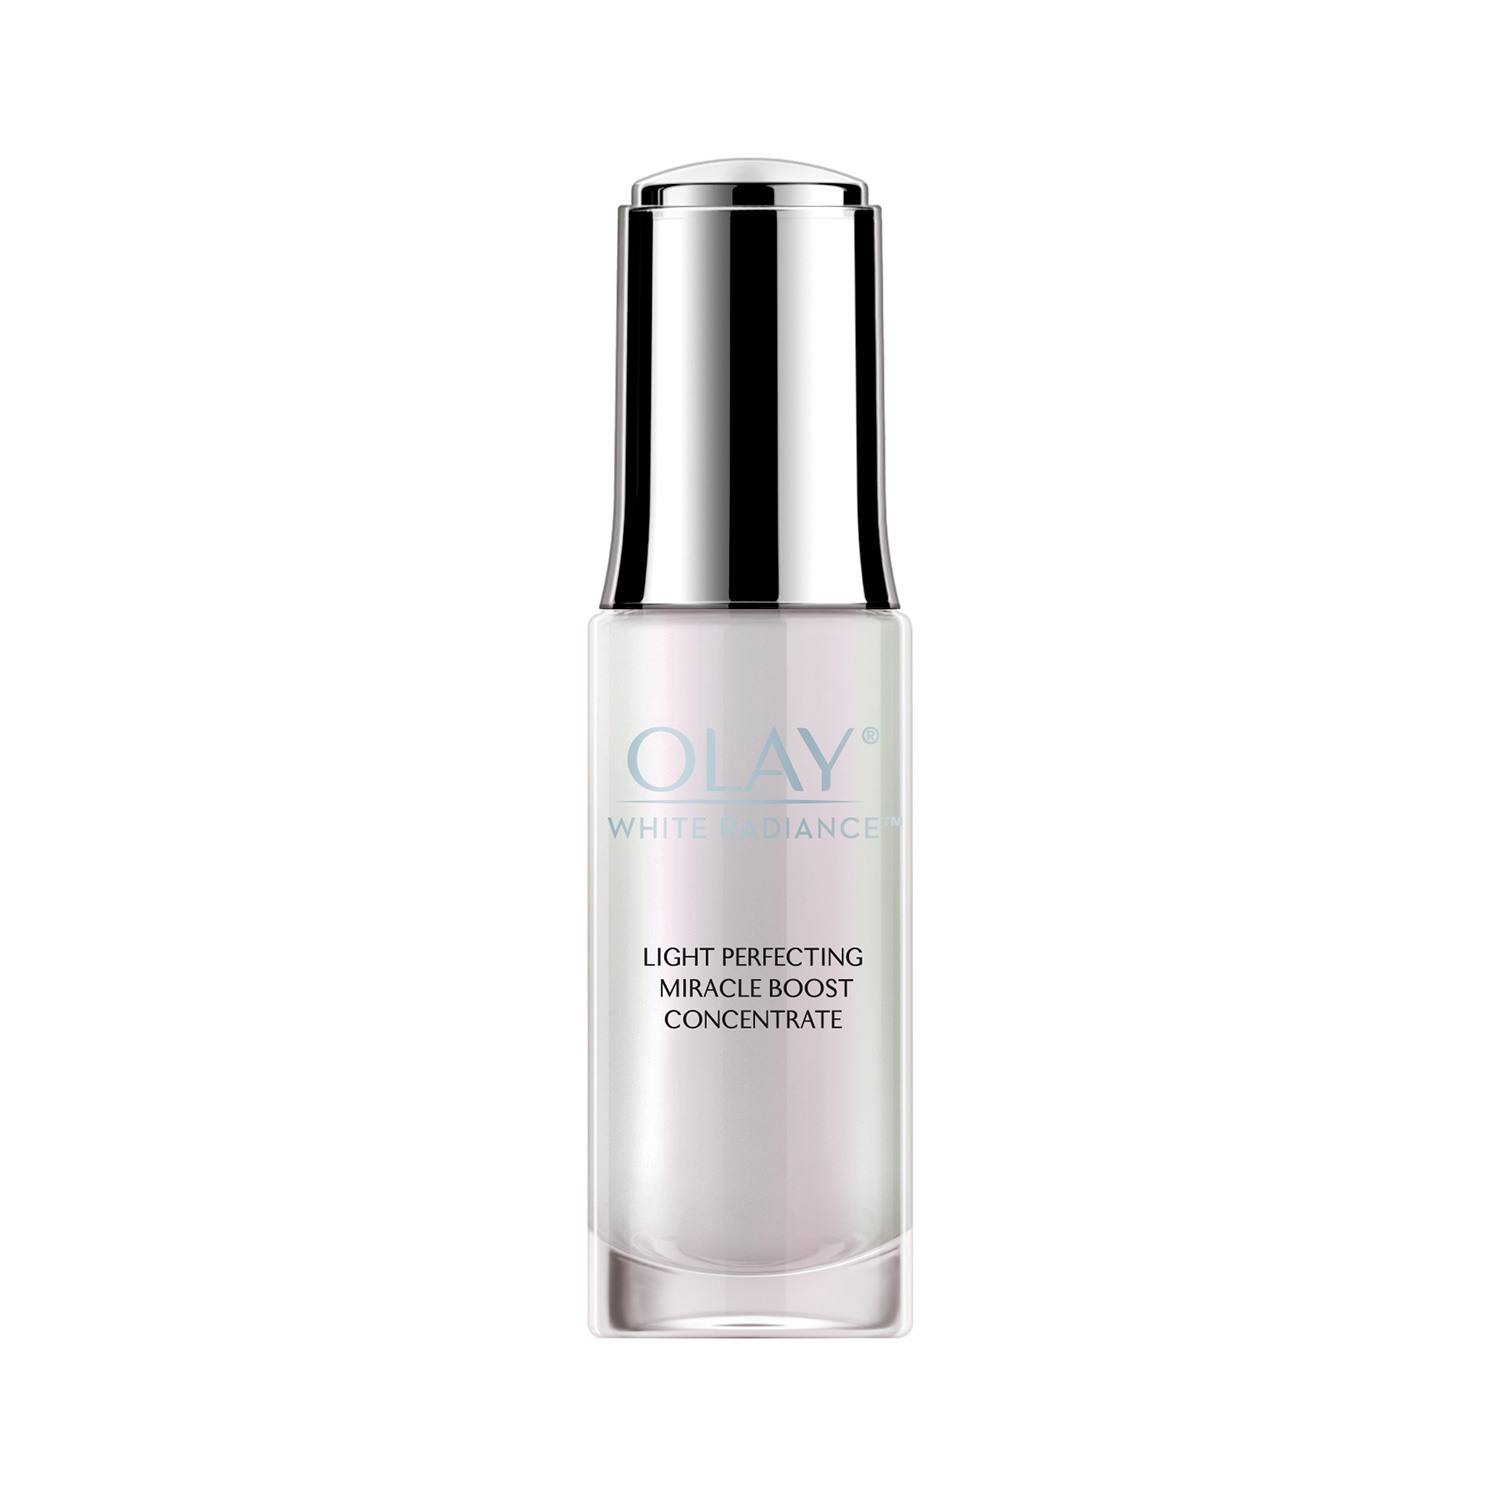 OLAY WR Miracle Boost Luminous Pre-Essence 40ml